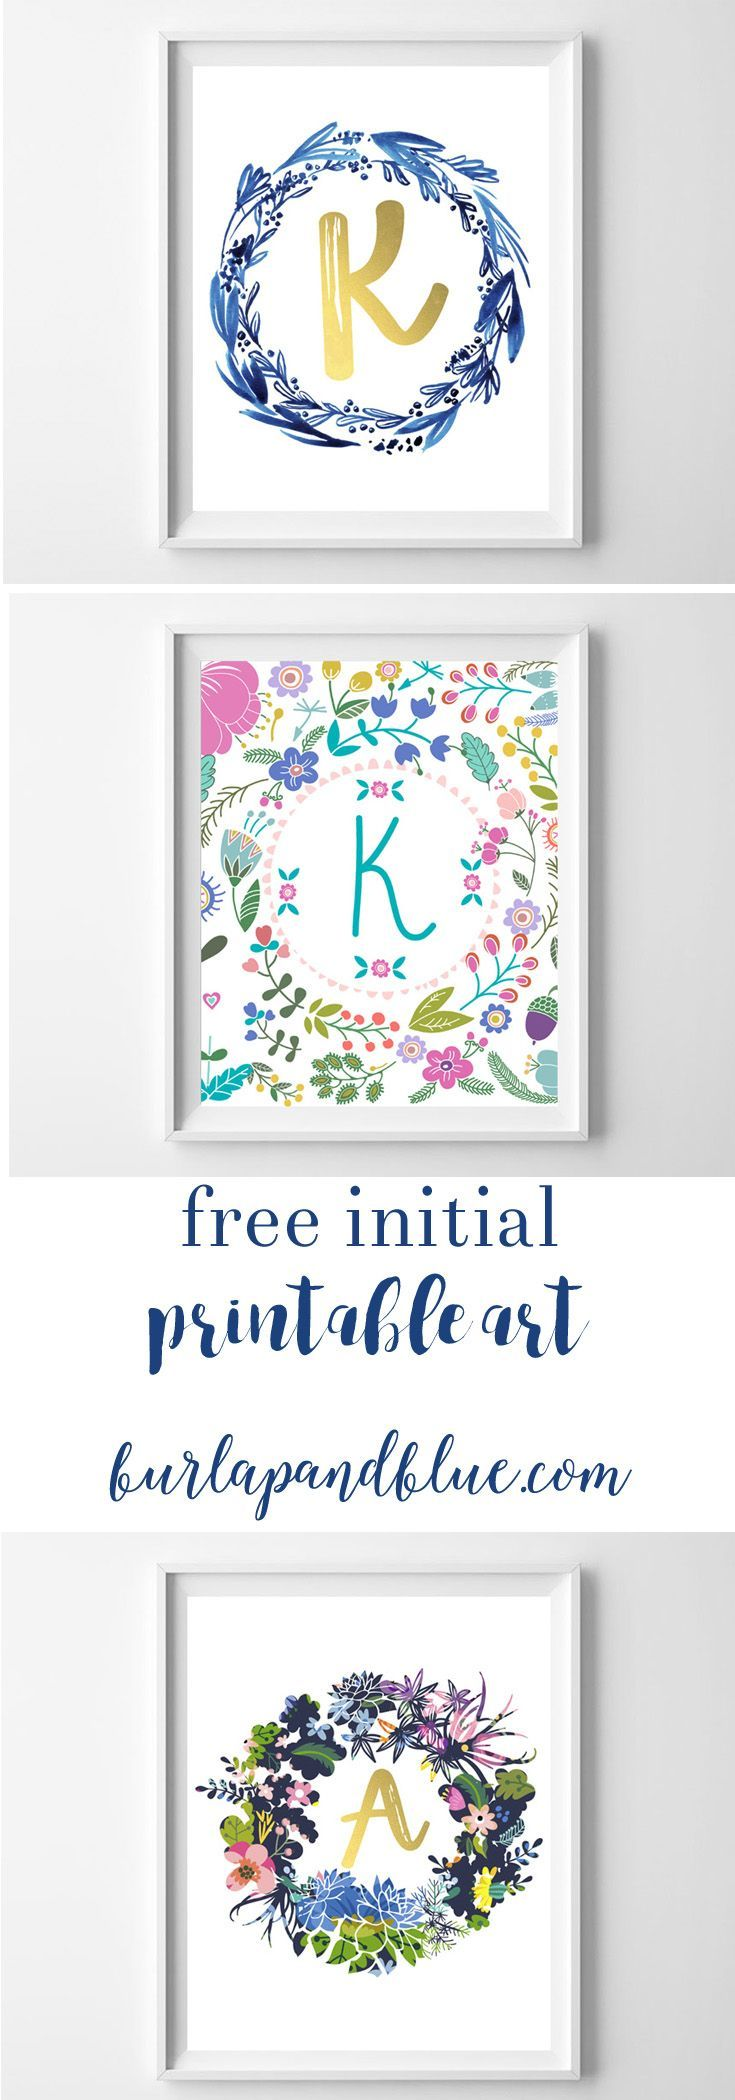 Love free printable art? Sharing over 10+ free initial printables. perfect for nurseries, kids rooms, gallery walls, home decor and gifts!